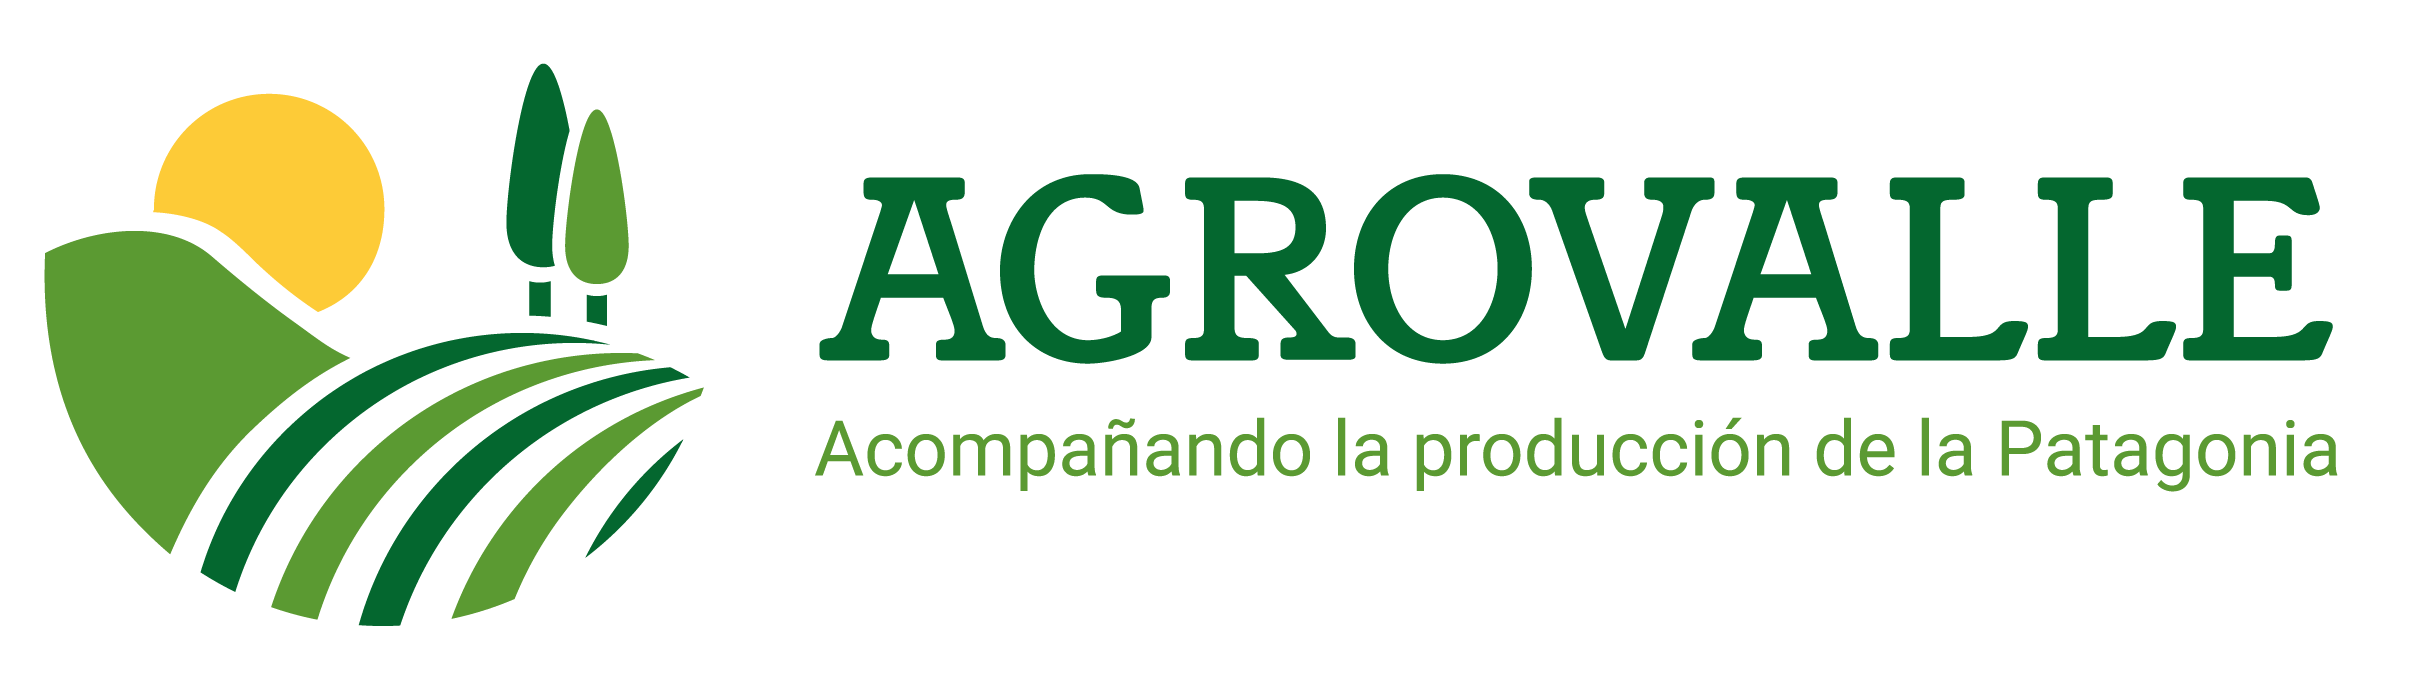 Agrovalle